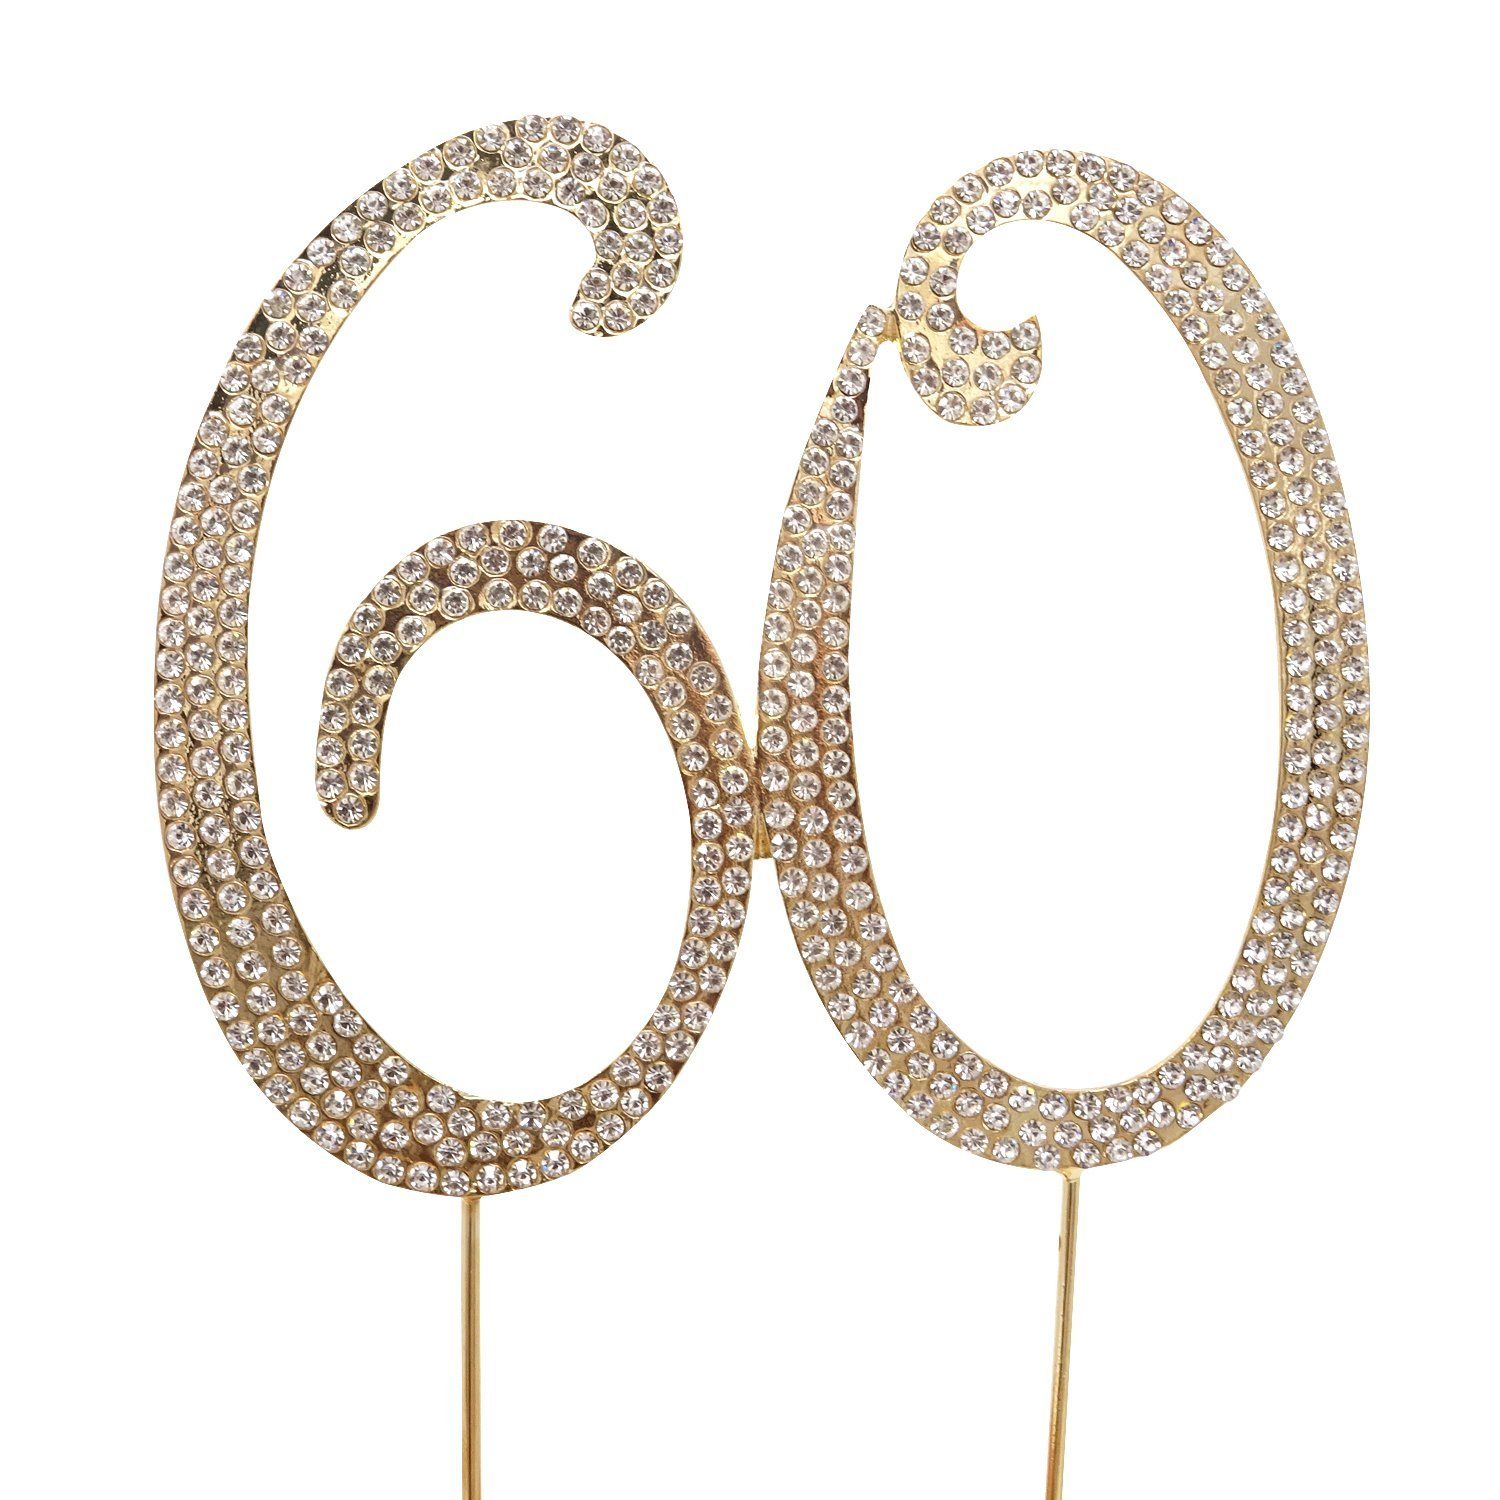 Honbay 60 Cake Topper Limited Special Price Premium Rhinestones Max 51% OFF Crystal Sparkly T